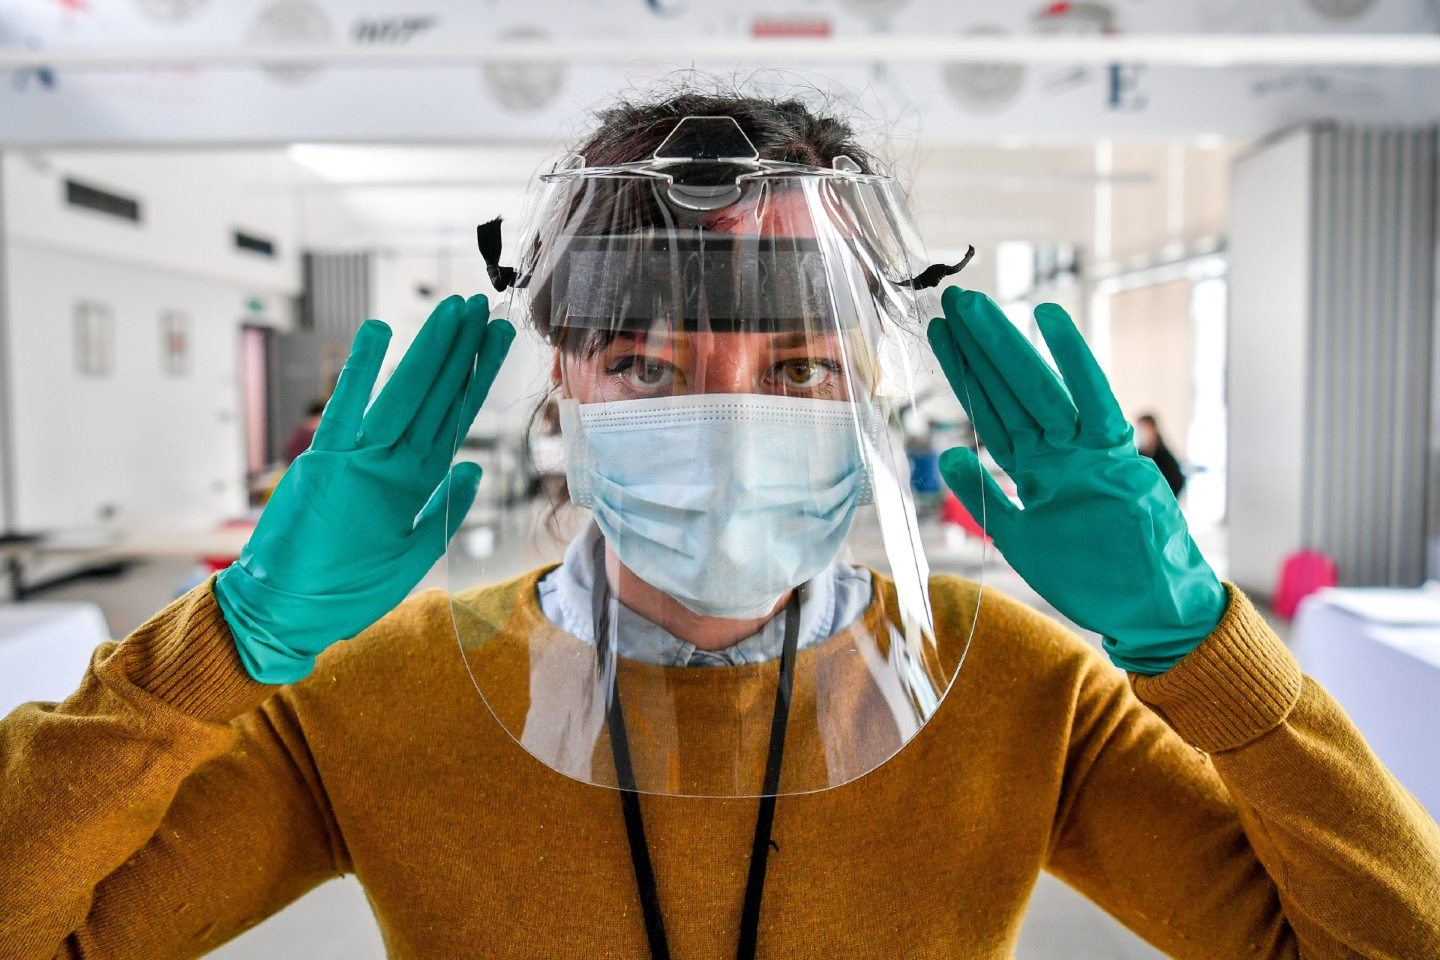 Health professionals at PRI say they have been left to treat patients who may Covid-19 with out of date PPE. (library photo)